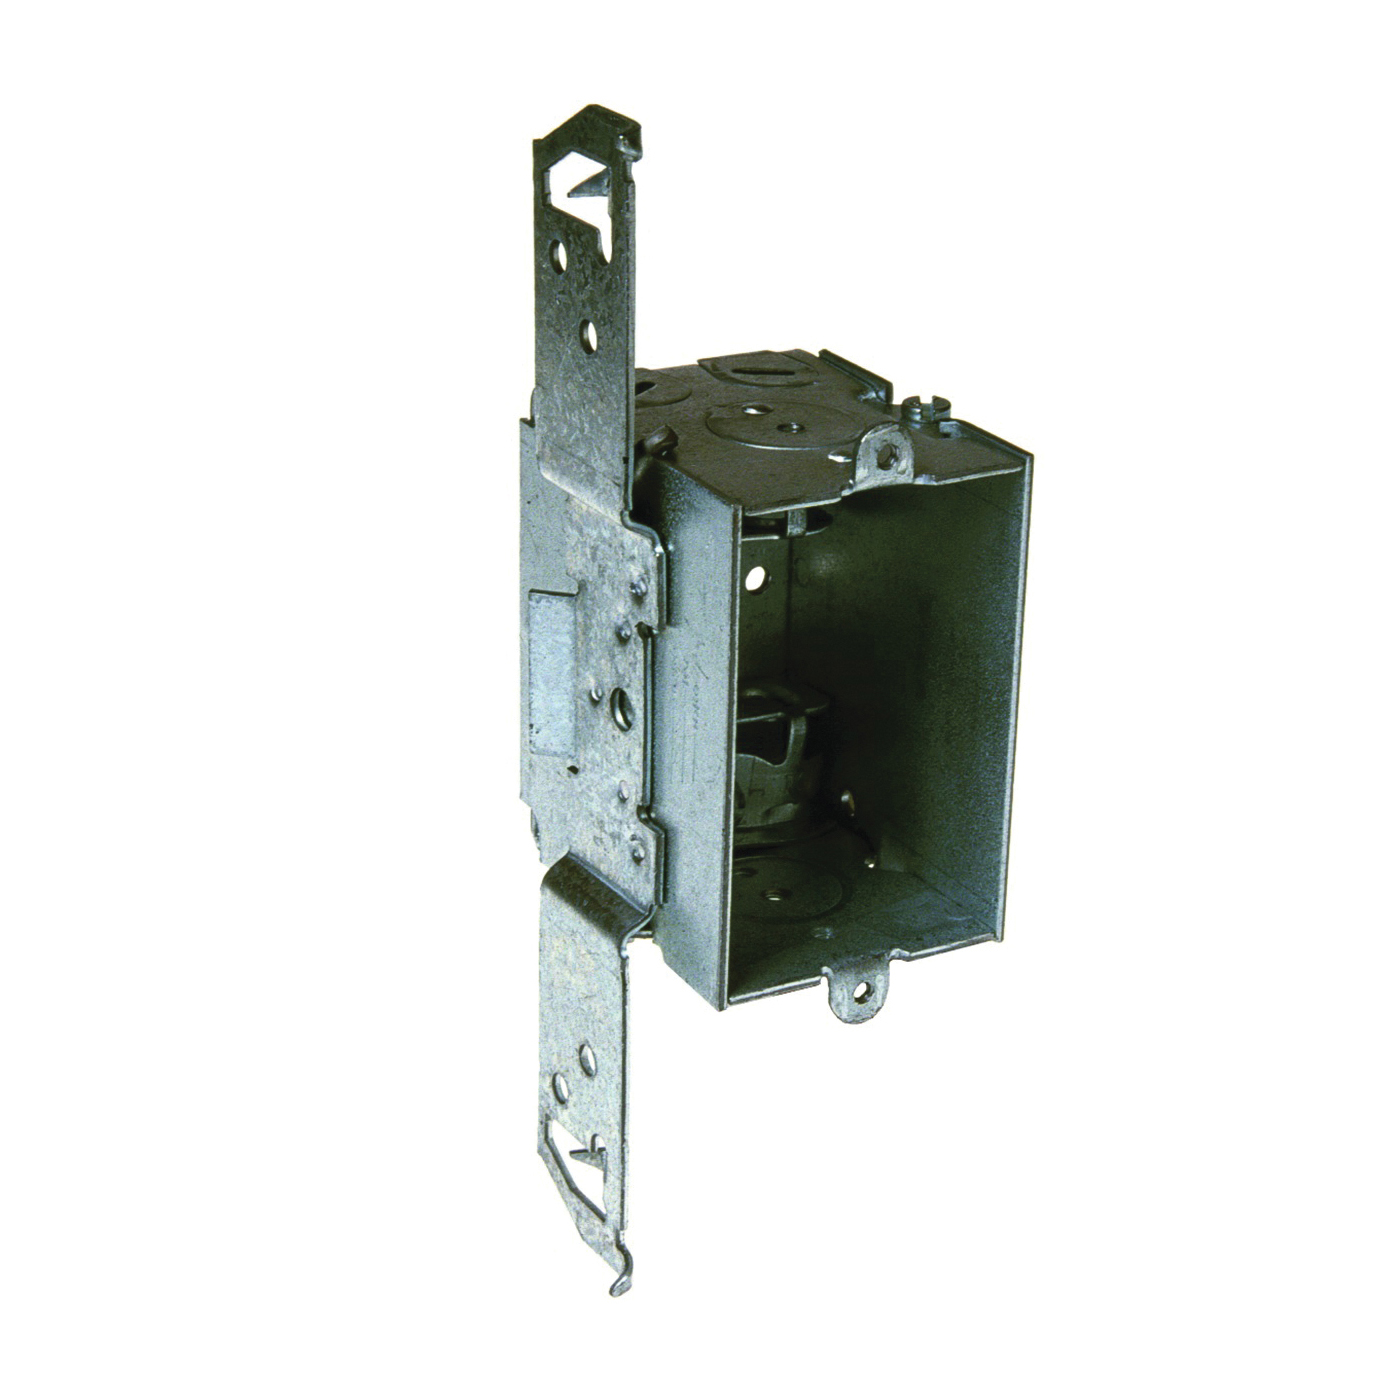 Picture of RACO 8524 Switch Box, 1-Gang, 3-Knockout, Steel, Aqua/Red, Bracket Mounting